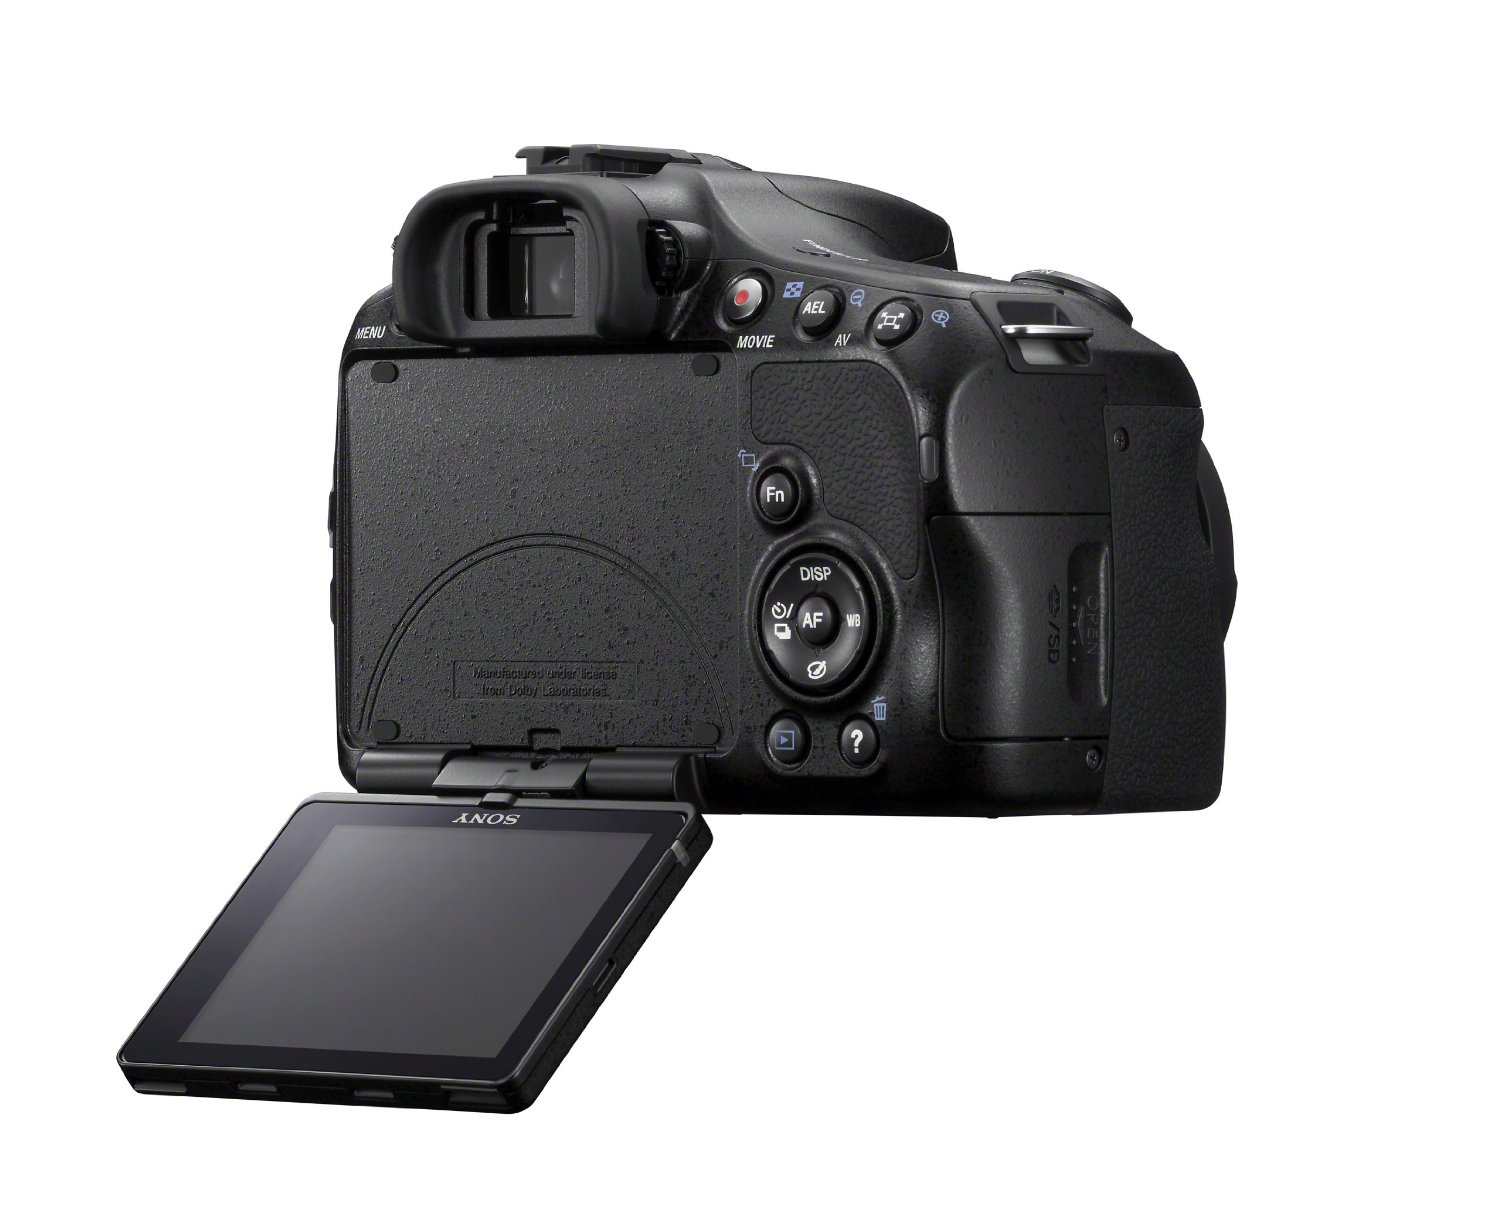 http://ebestshopforyou.com/wp-content/uploads/2013/07/Sony-A65-24.3-MP-Translucent-Mirror-Digital-SLR-With-18-55mm-lens-2.jpg